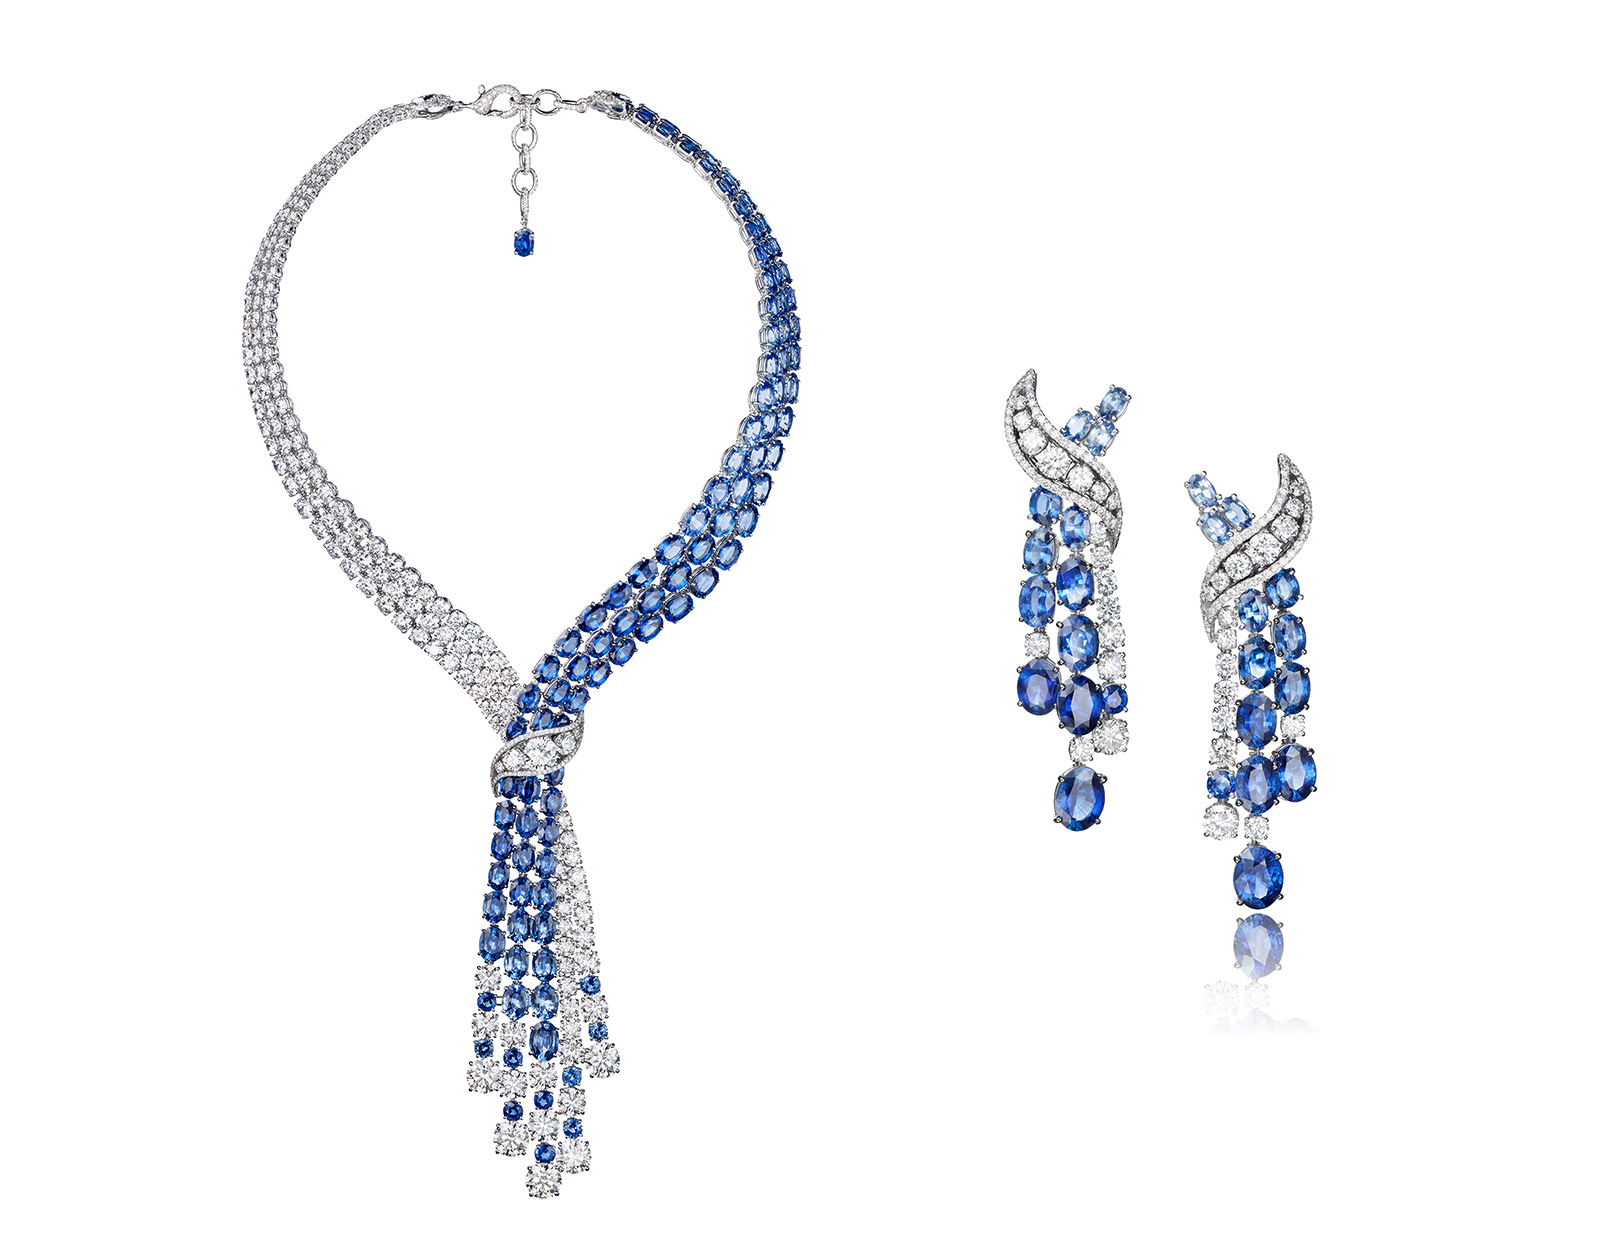 Arctic Tango earrings with sapphires and diamonds by Adler